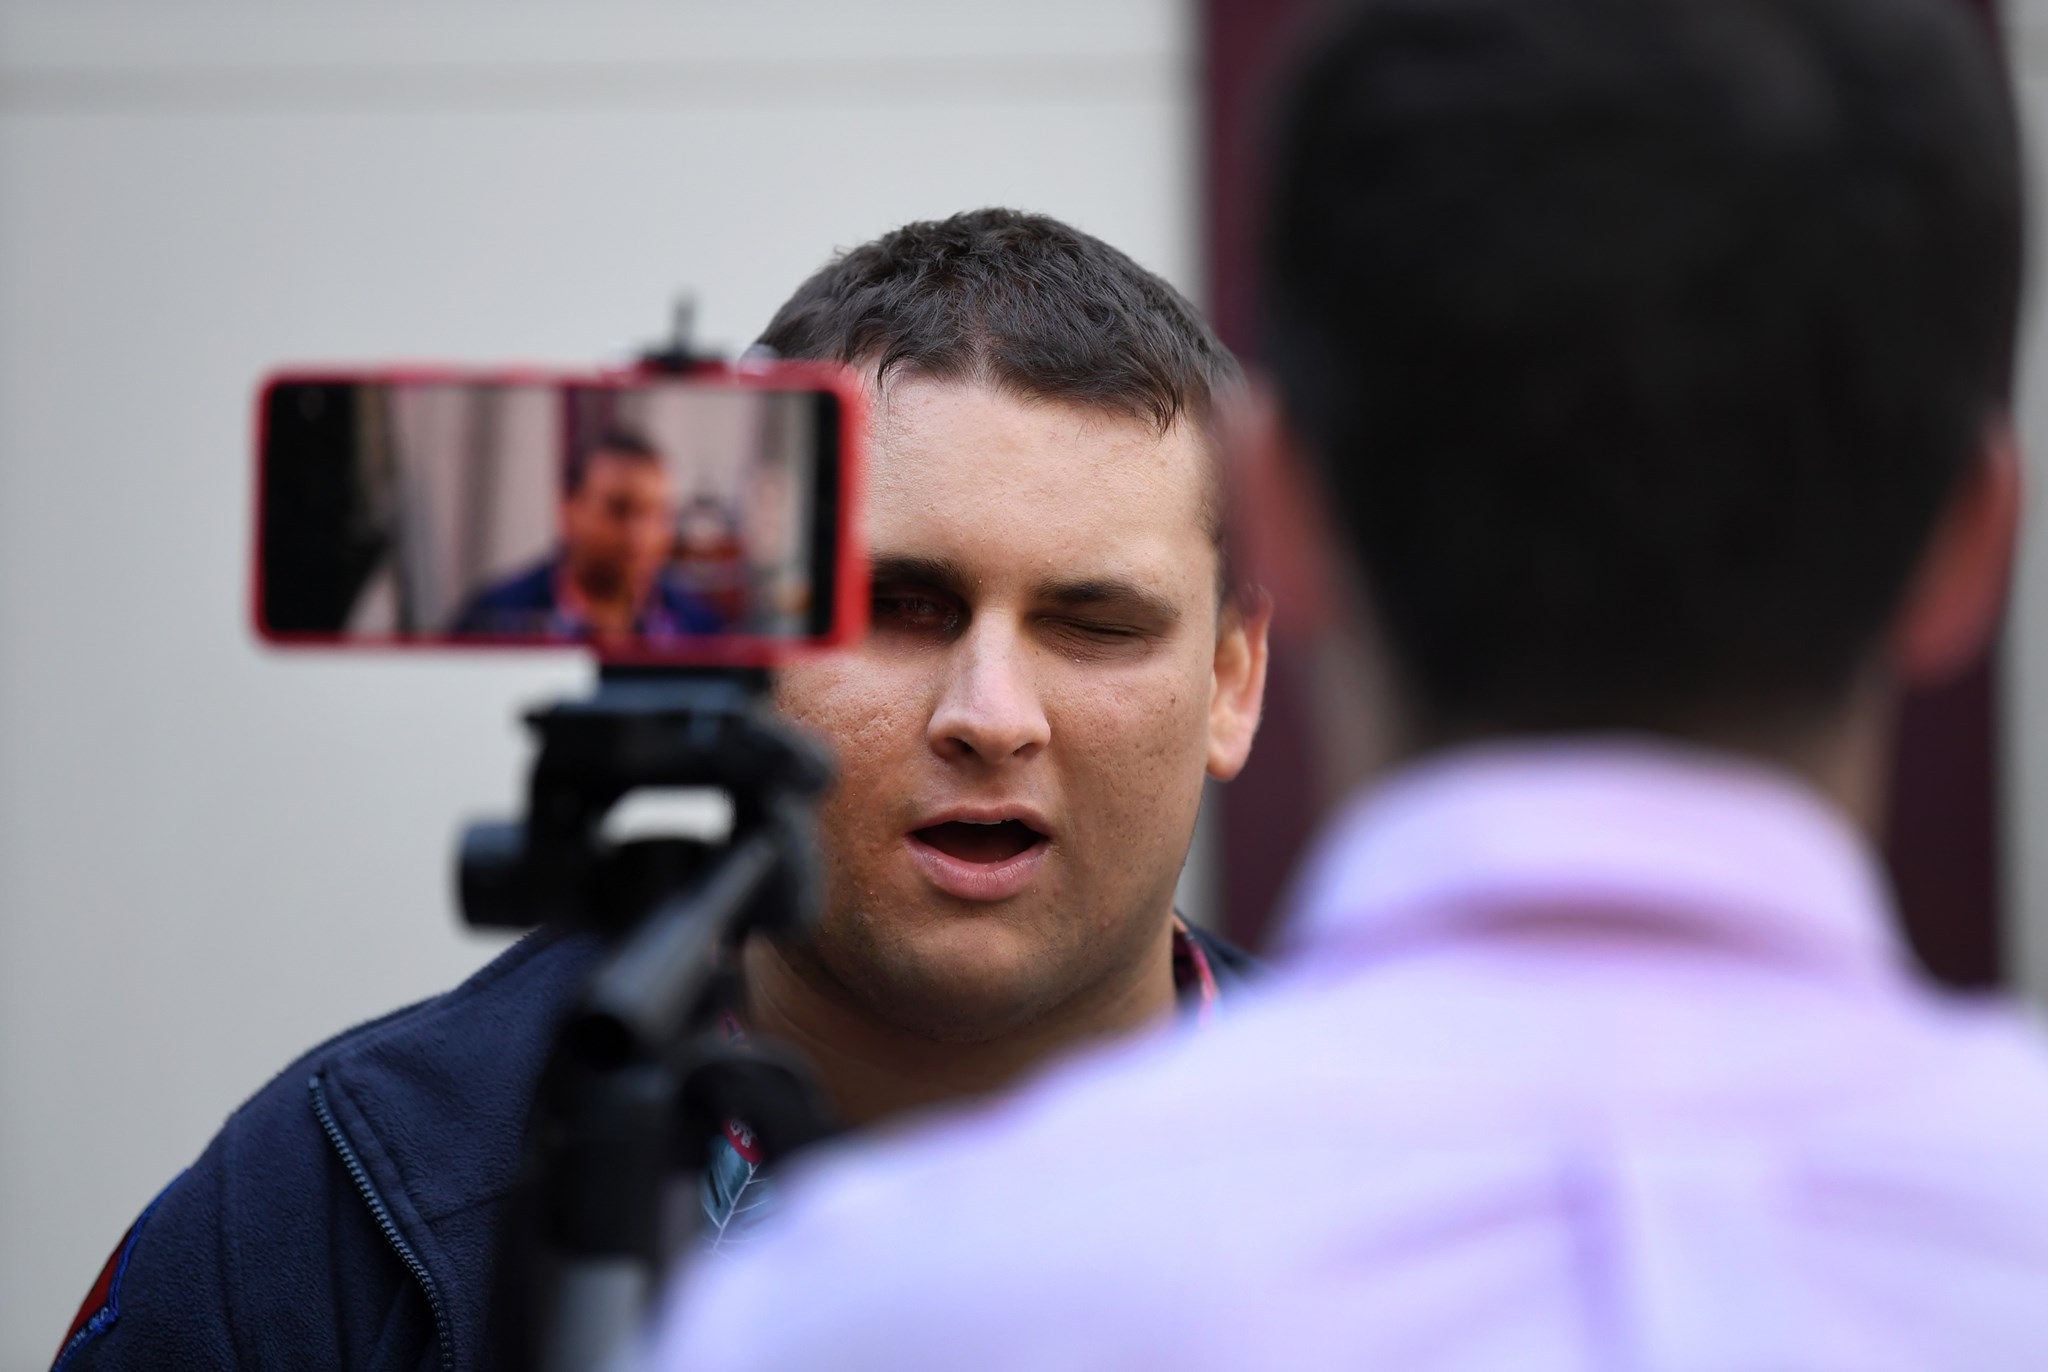 A man with his back to the camera is sitting behind a phone on a tripod. The man and the phone are facing facing a man is being filmed and is looking at the camera.